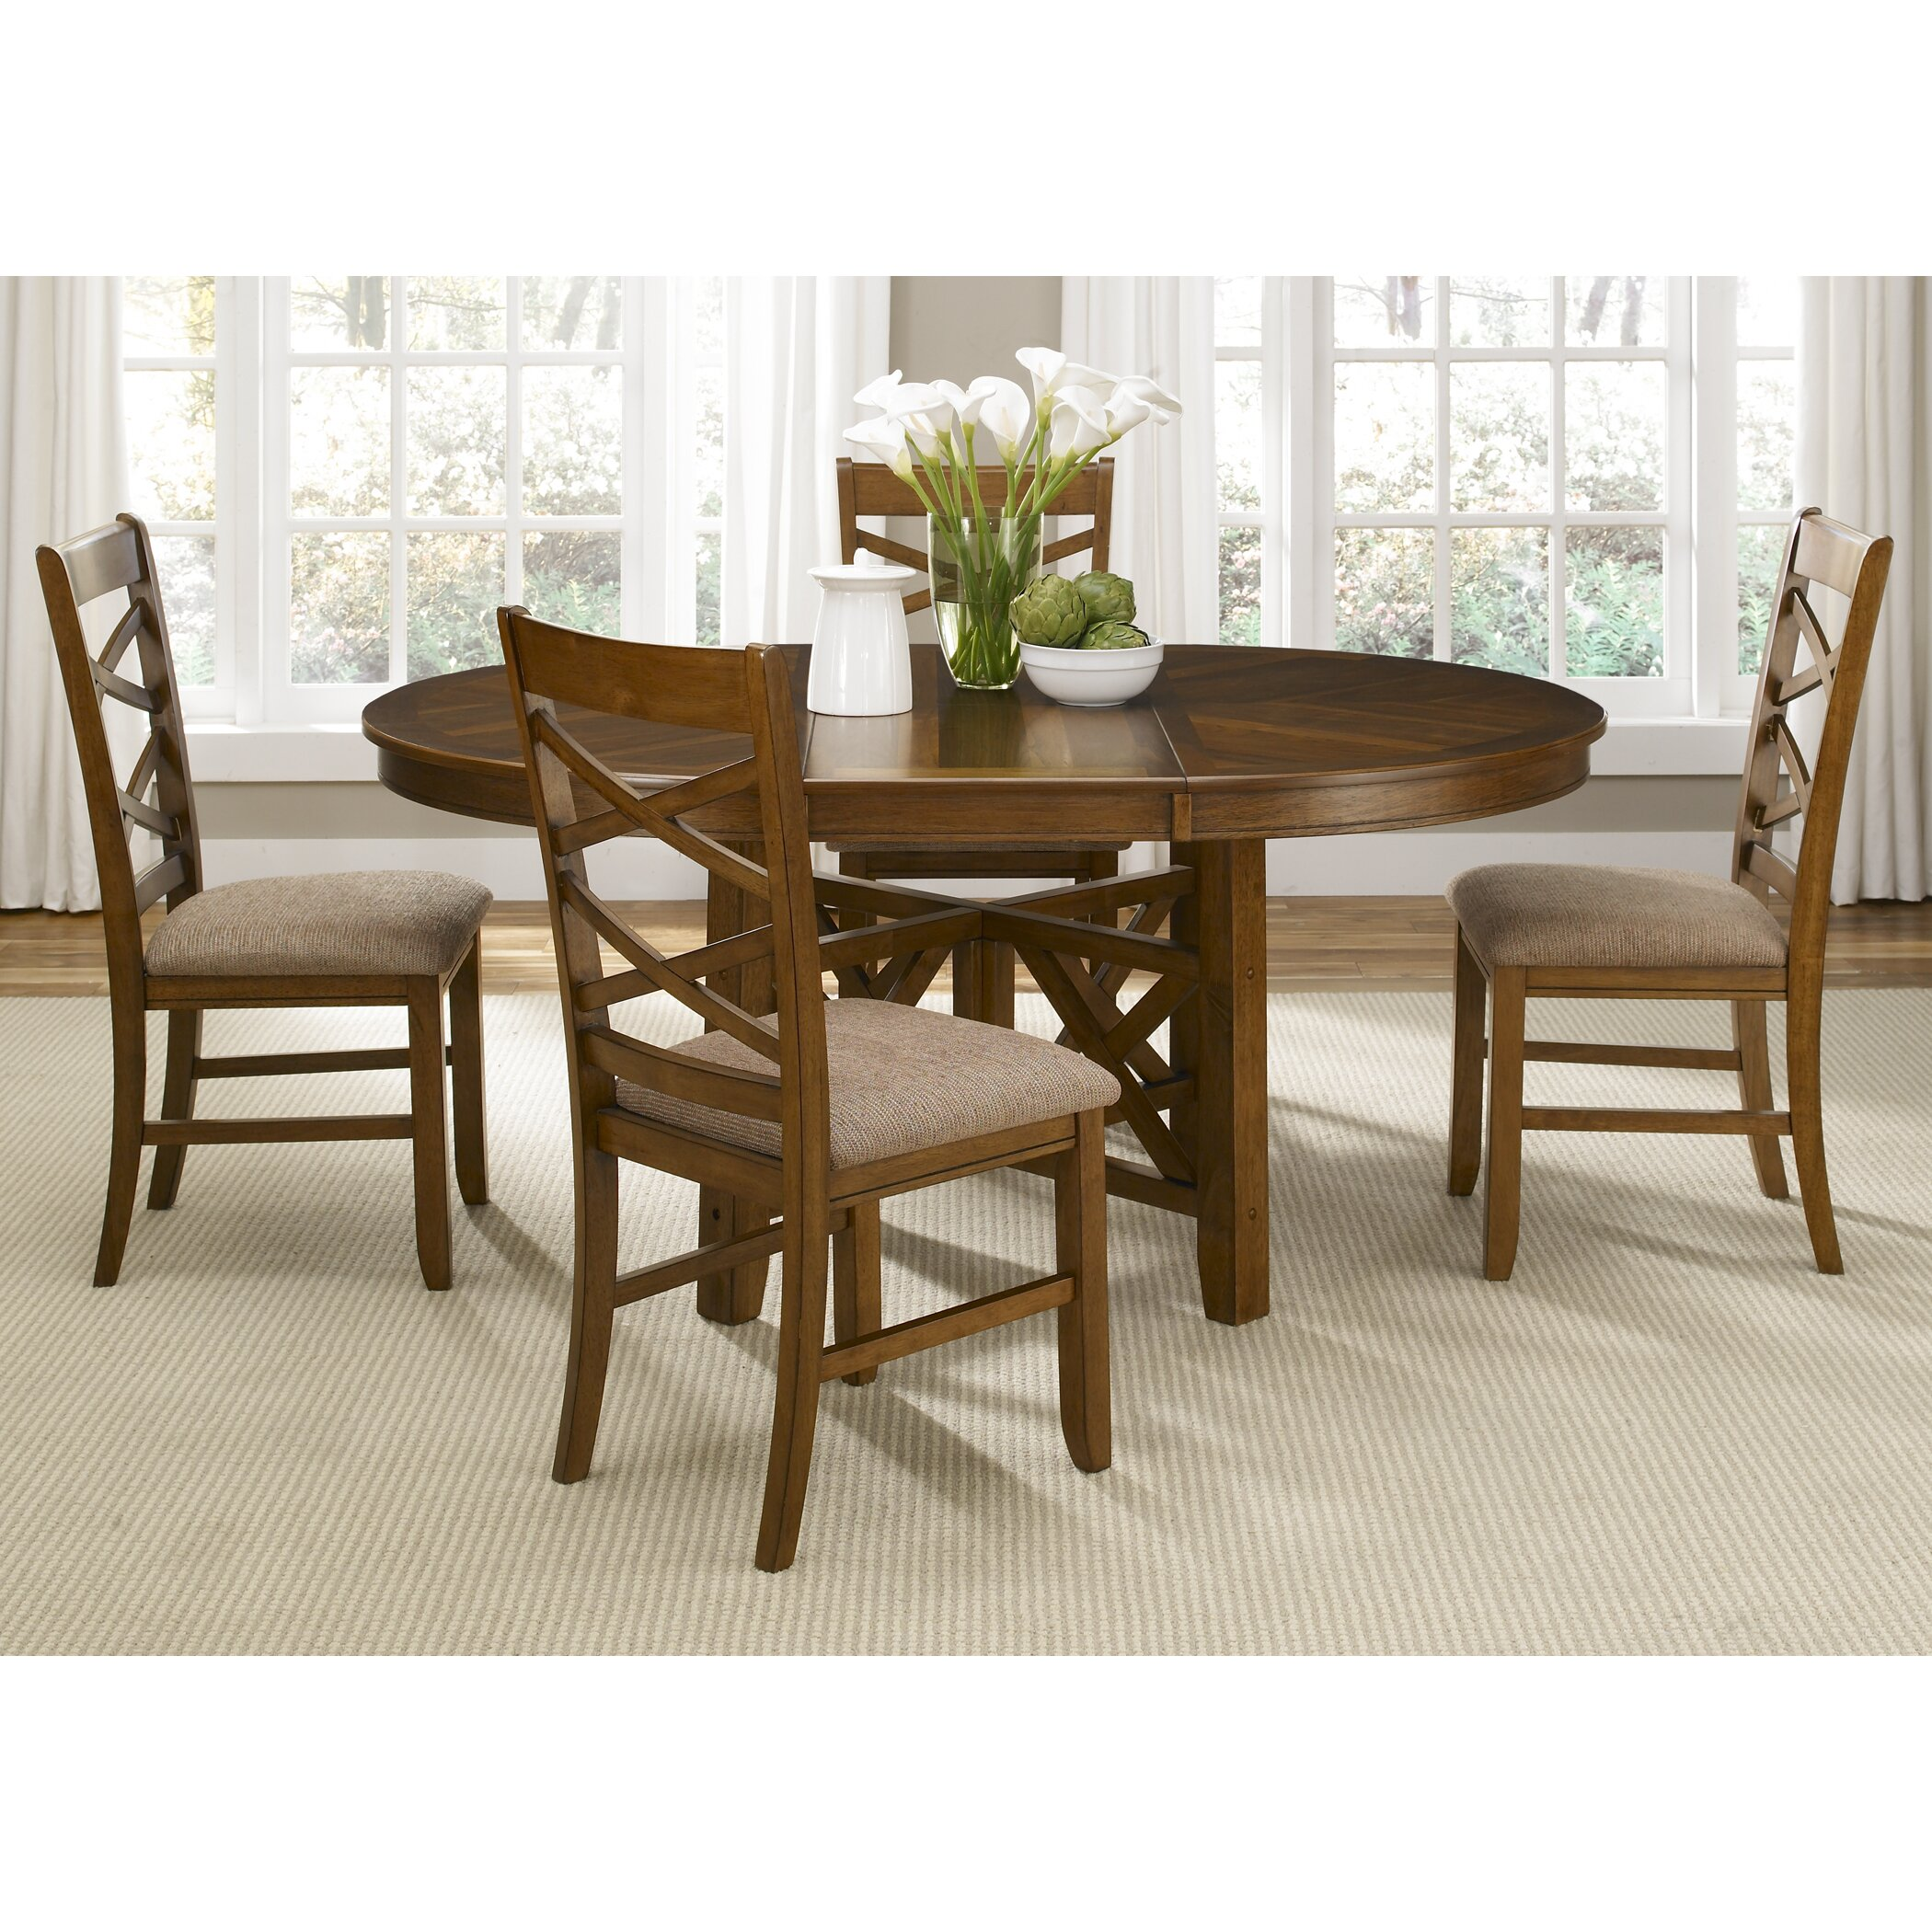 Liberty furniture bistro 5 piece dining set reviews for 5 piece dining set